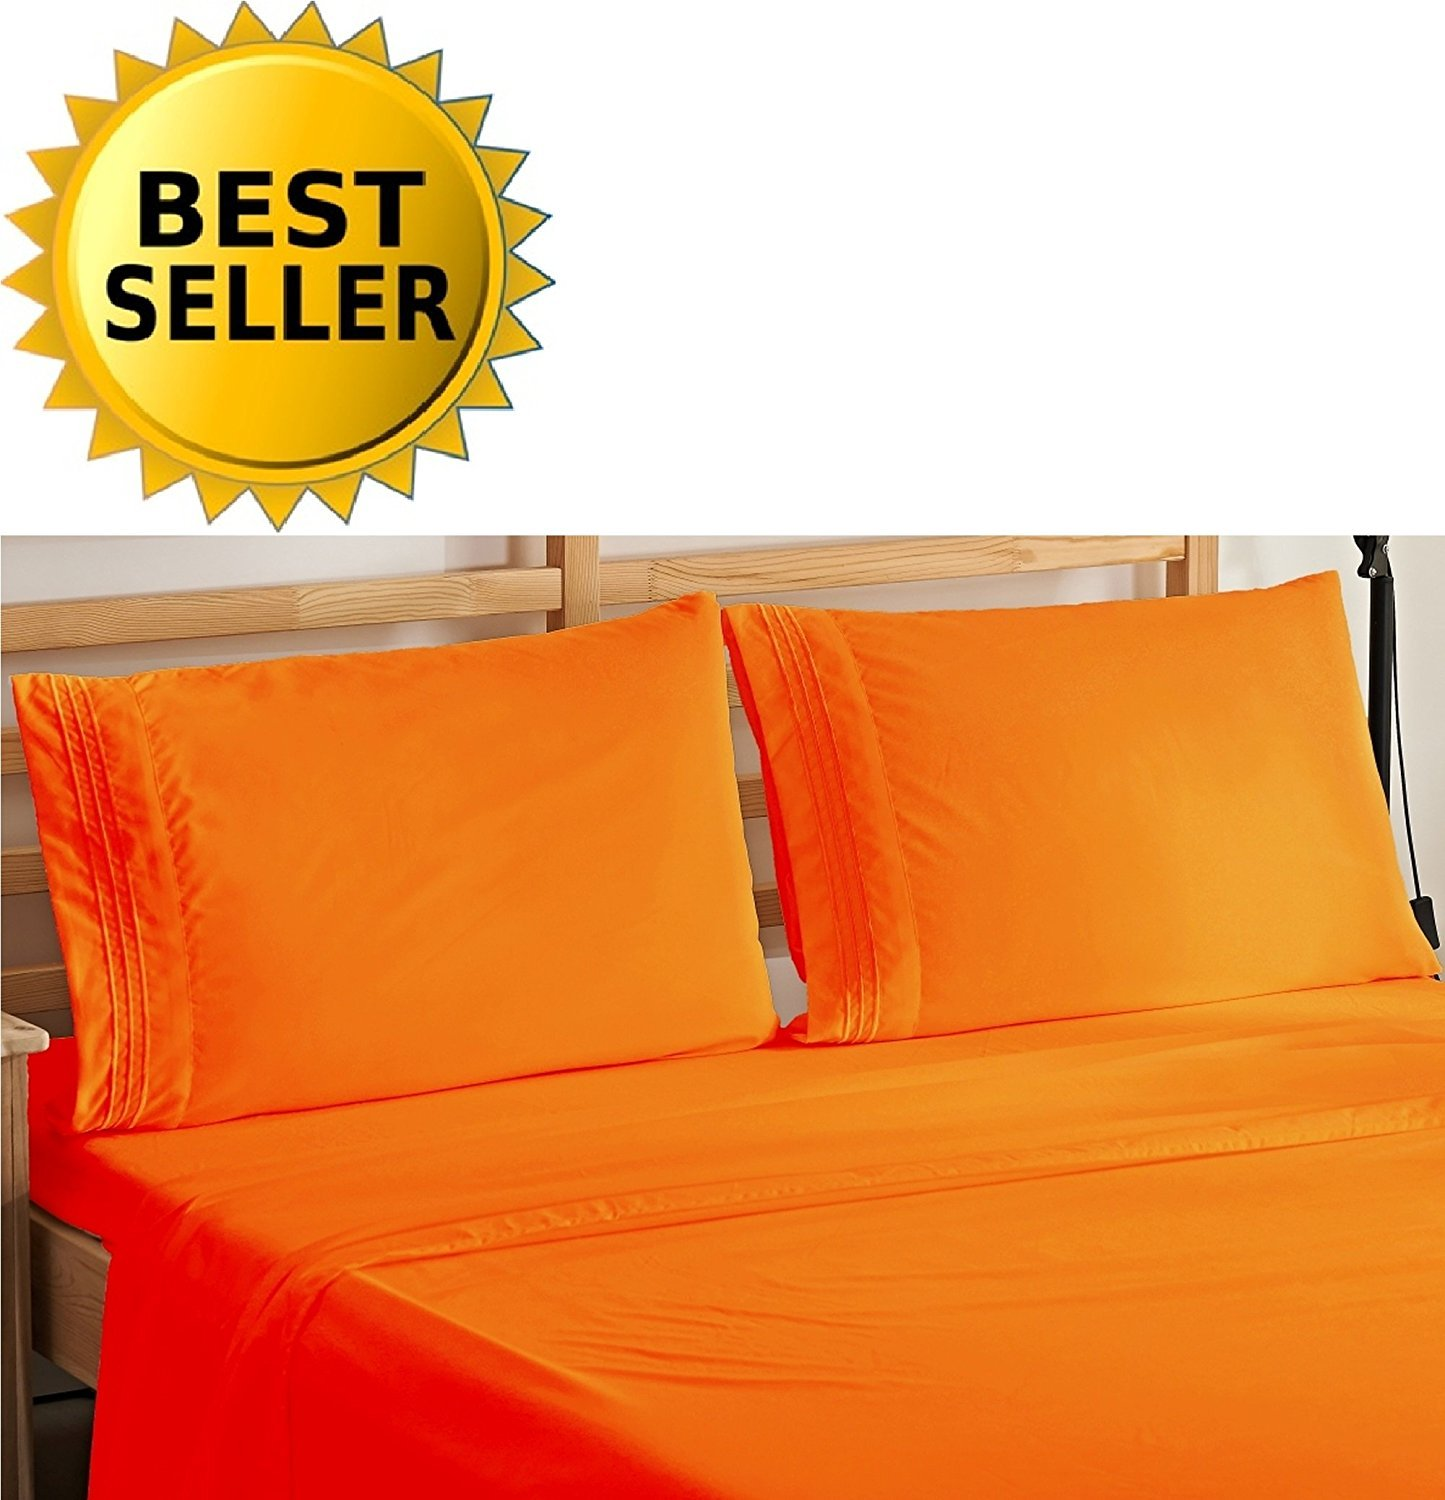 Elegant Comfort 4-Piece Bedding Sheet Set! Luxury Soft 1500 Thread Count Egyptian Quality Wrinkle & Fade Resistant with Deep Pocket, King, Elite Orange